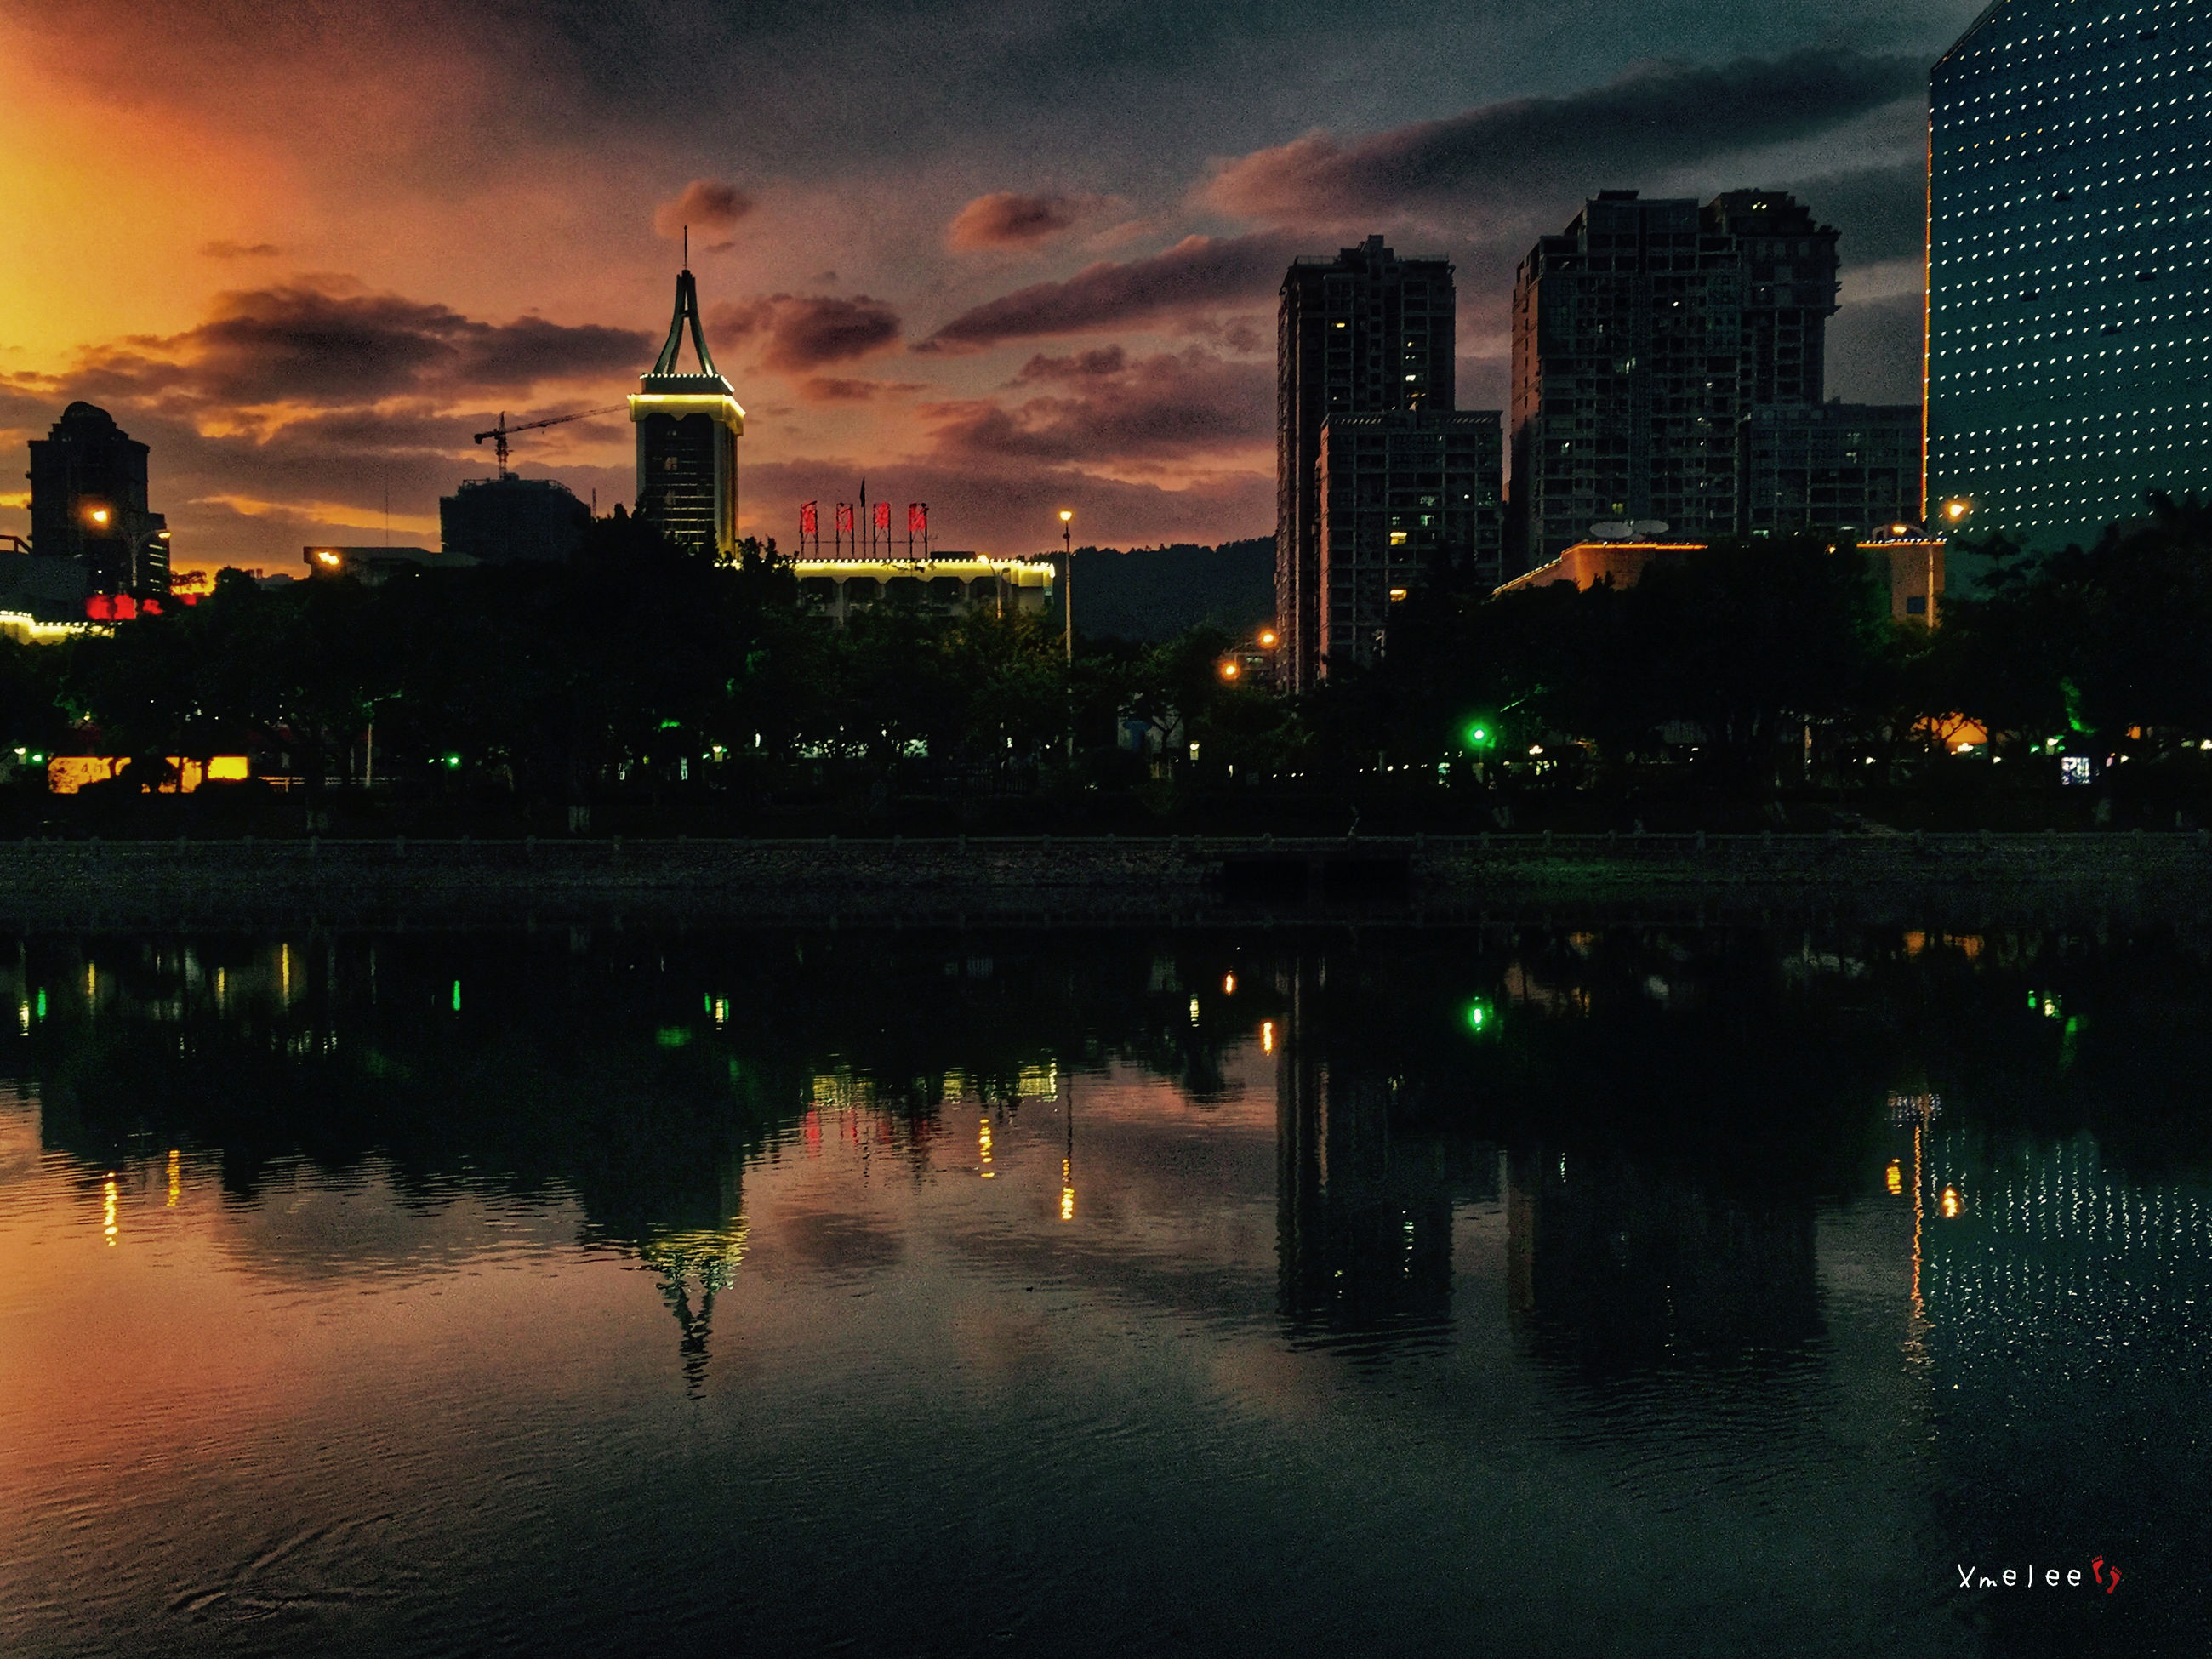 building exterior, architecture, built structure, city, water, illuminated, sky, reflection, waterfront, skyscraper, river, tower, cityscape, night, cloud - sky, sunset, tall - high, modern, urban skyline, office building